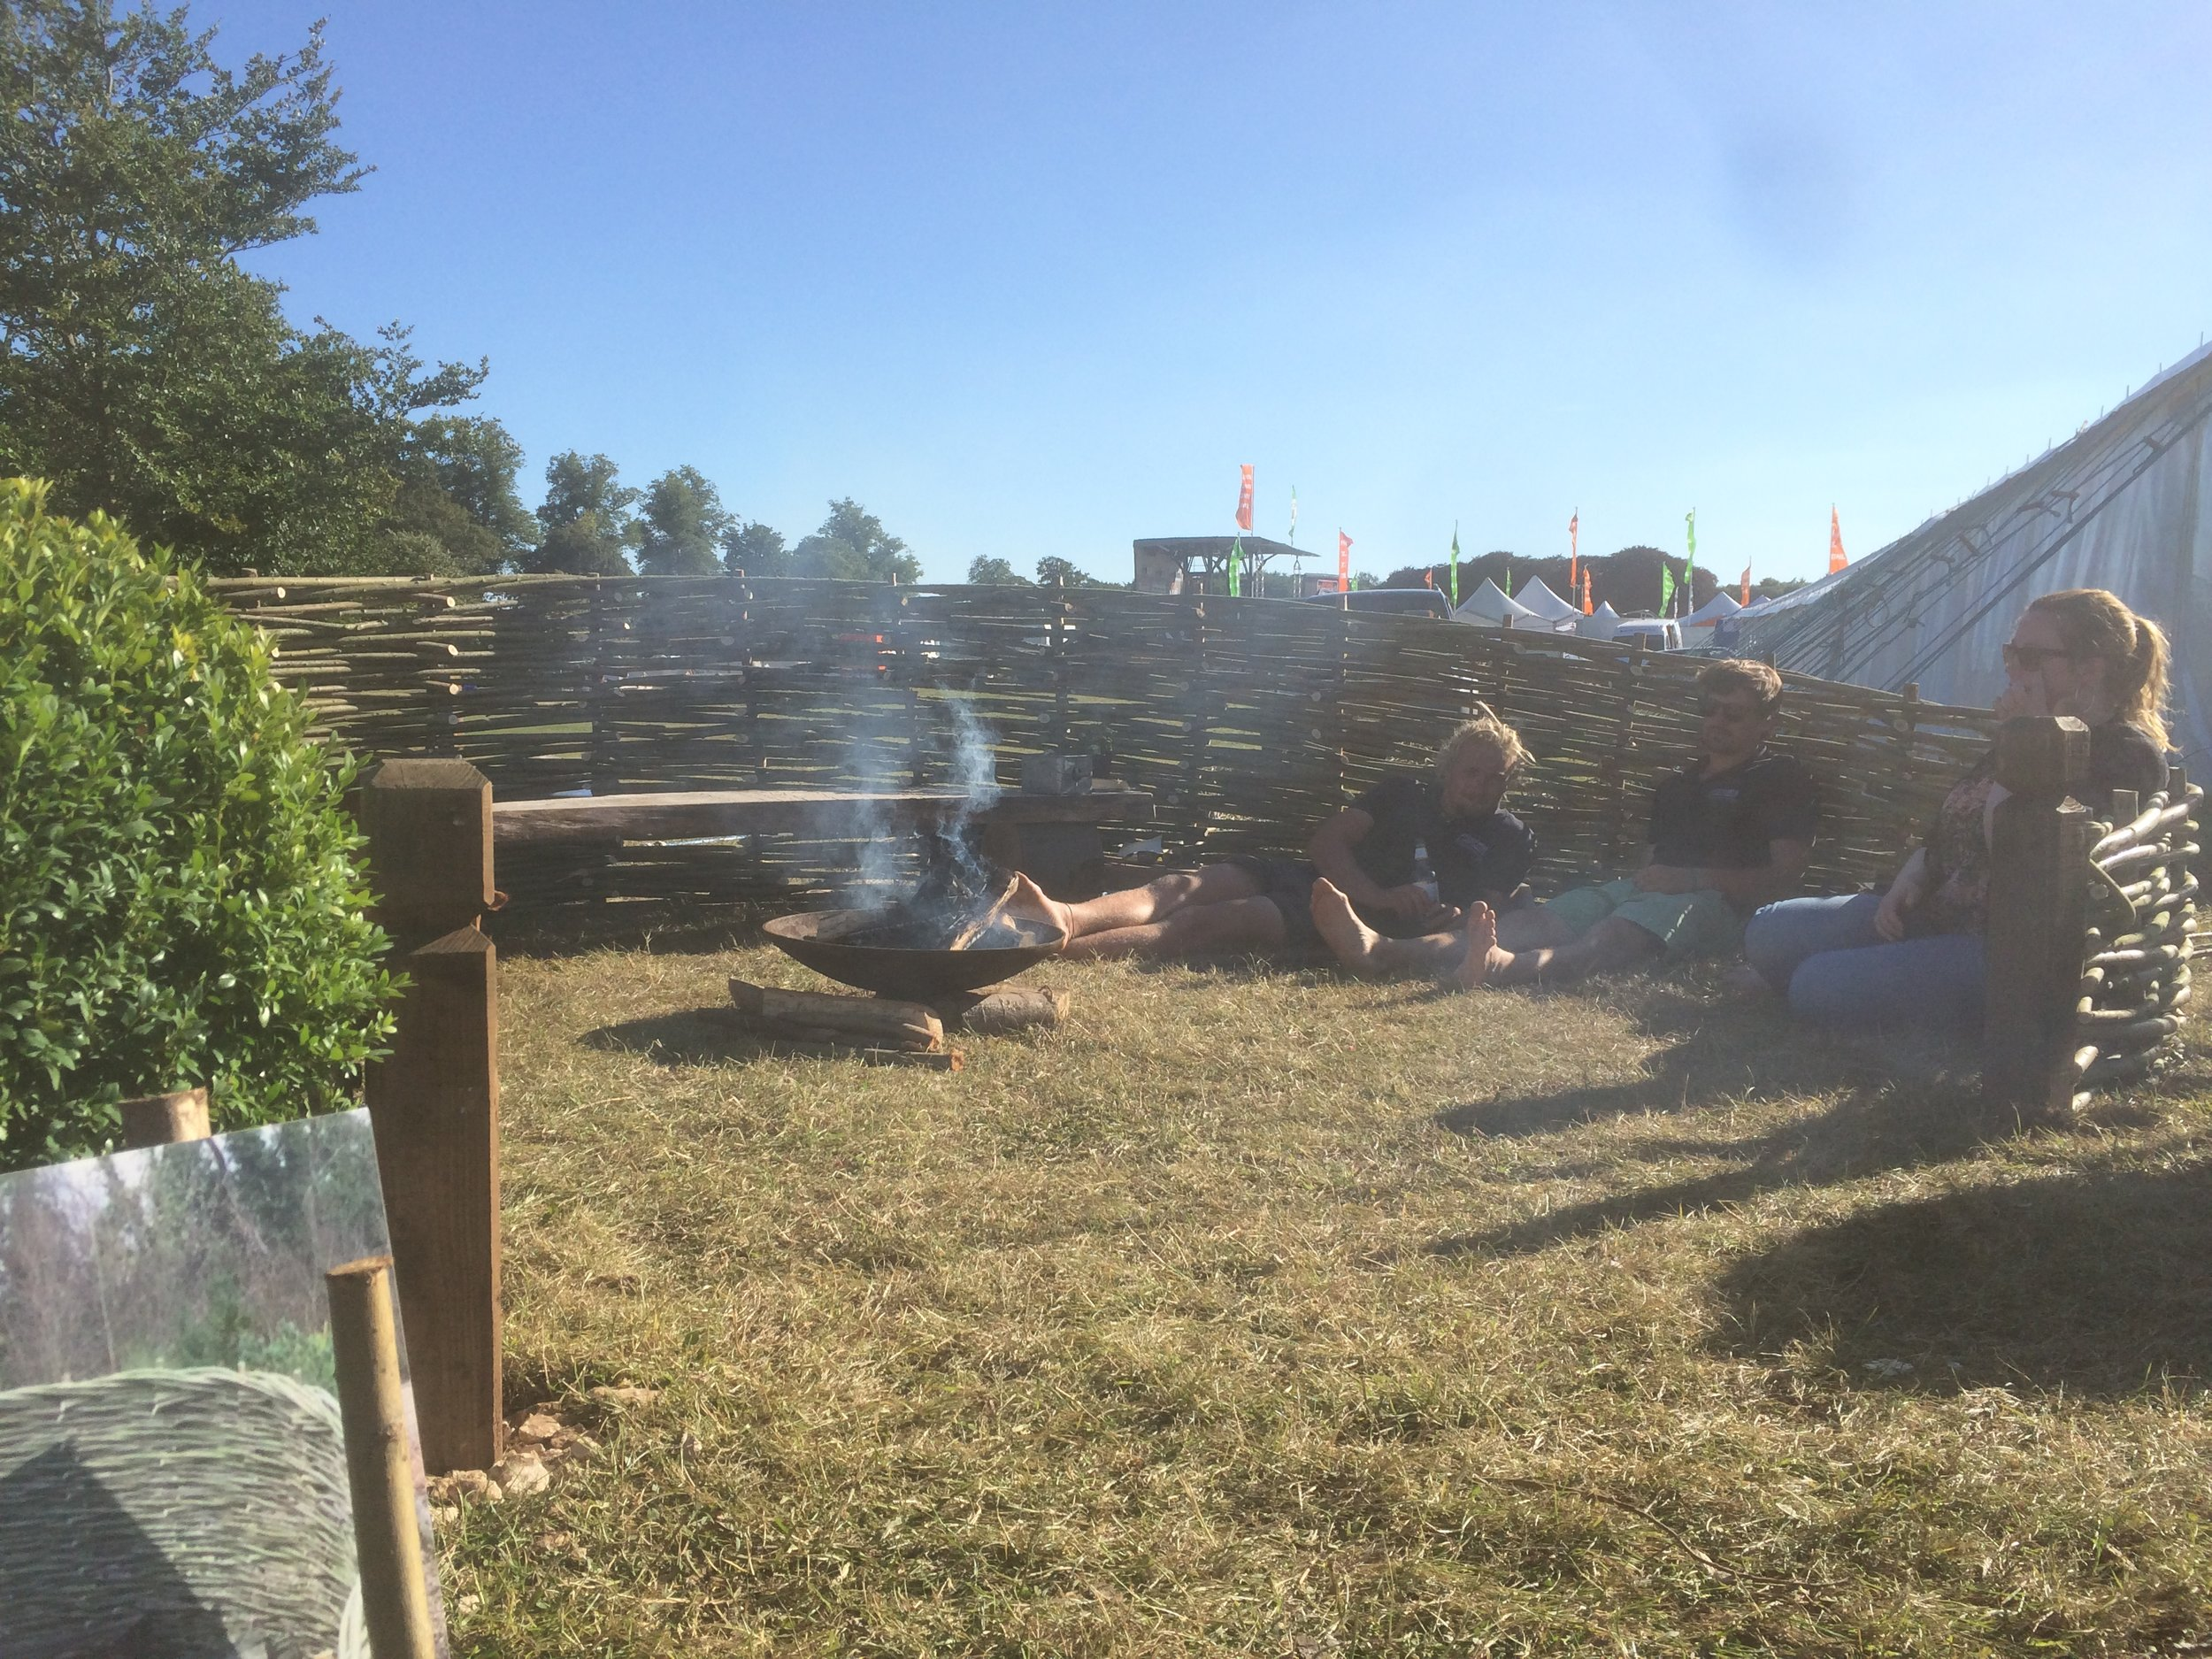 Countryfile Live show